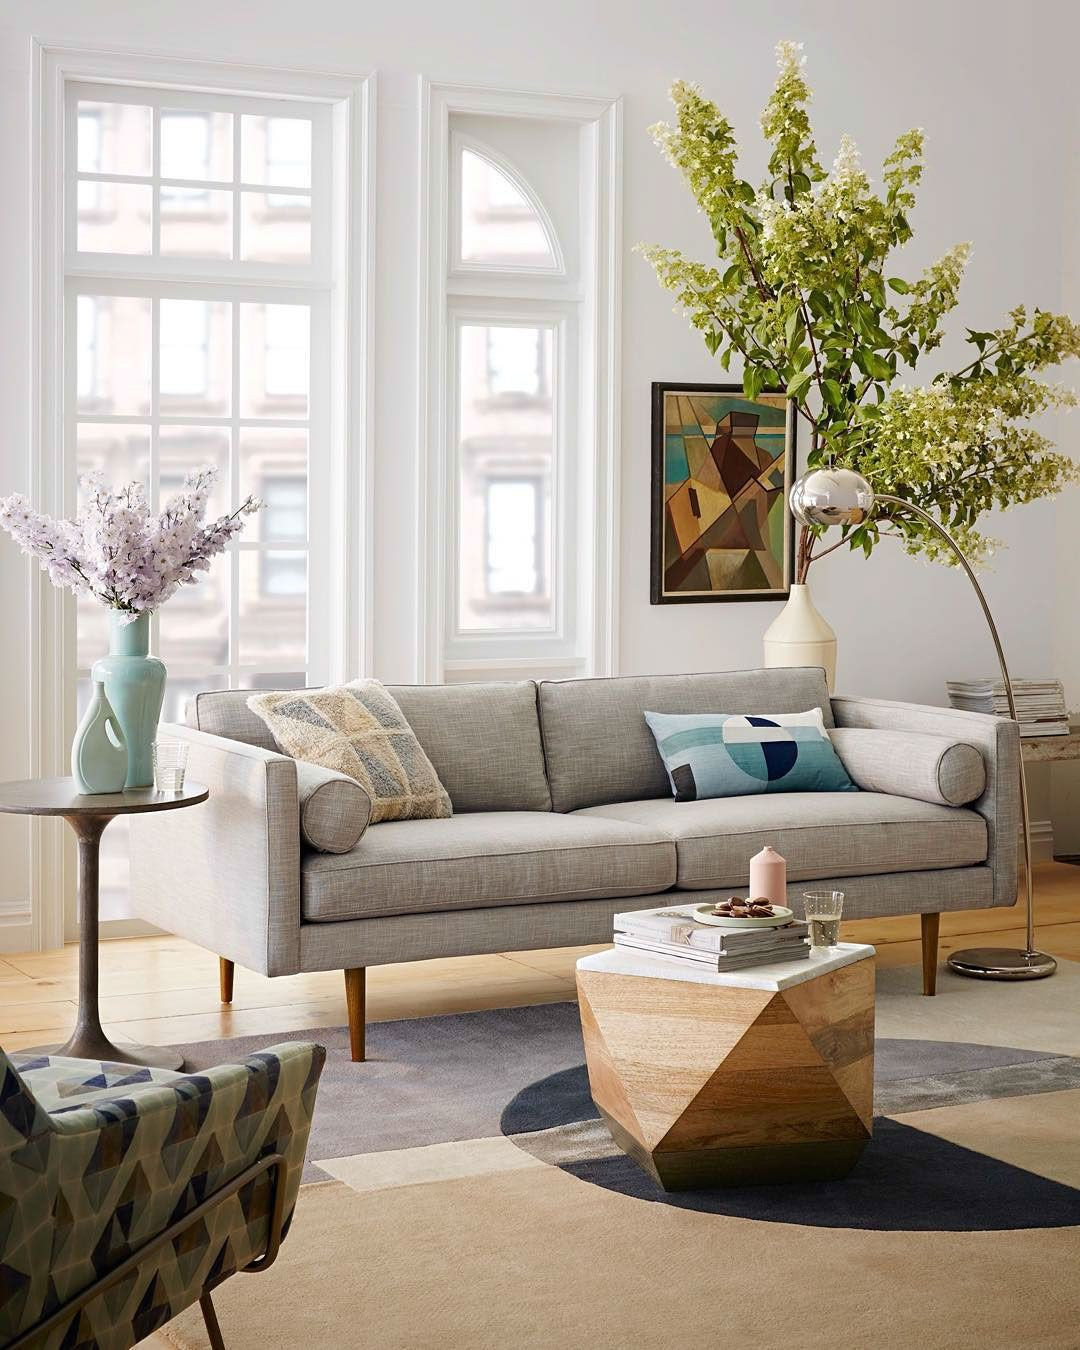 Comfortable Living Room Mid Century Embrace the Clean Lines and fortable Colors Of West Elm